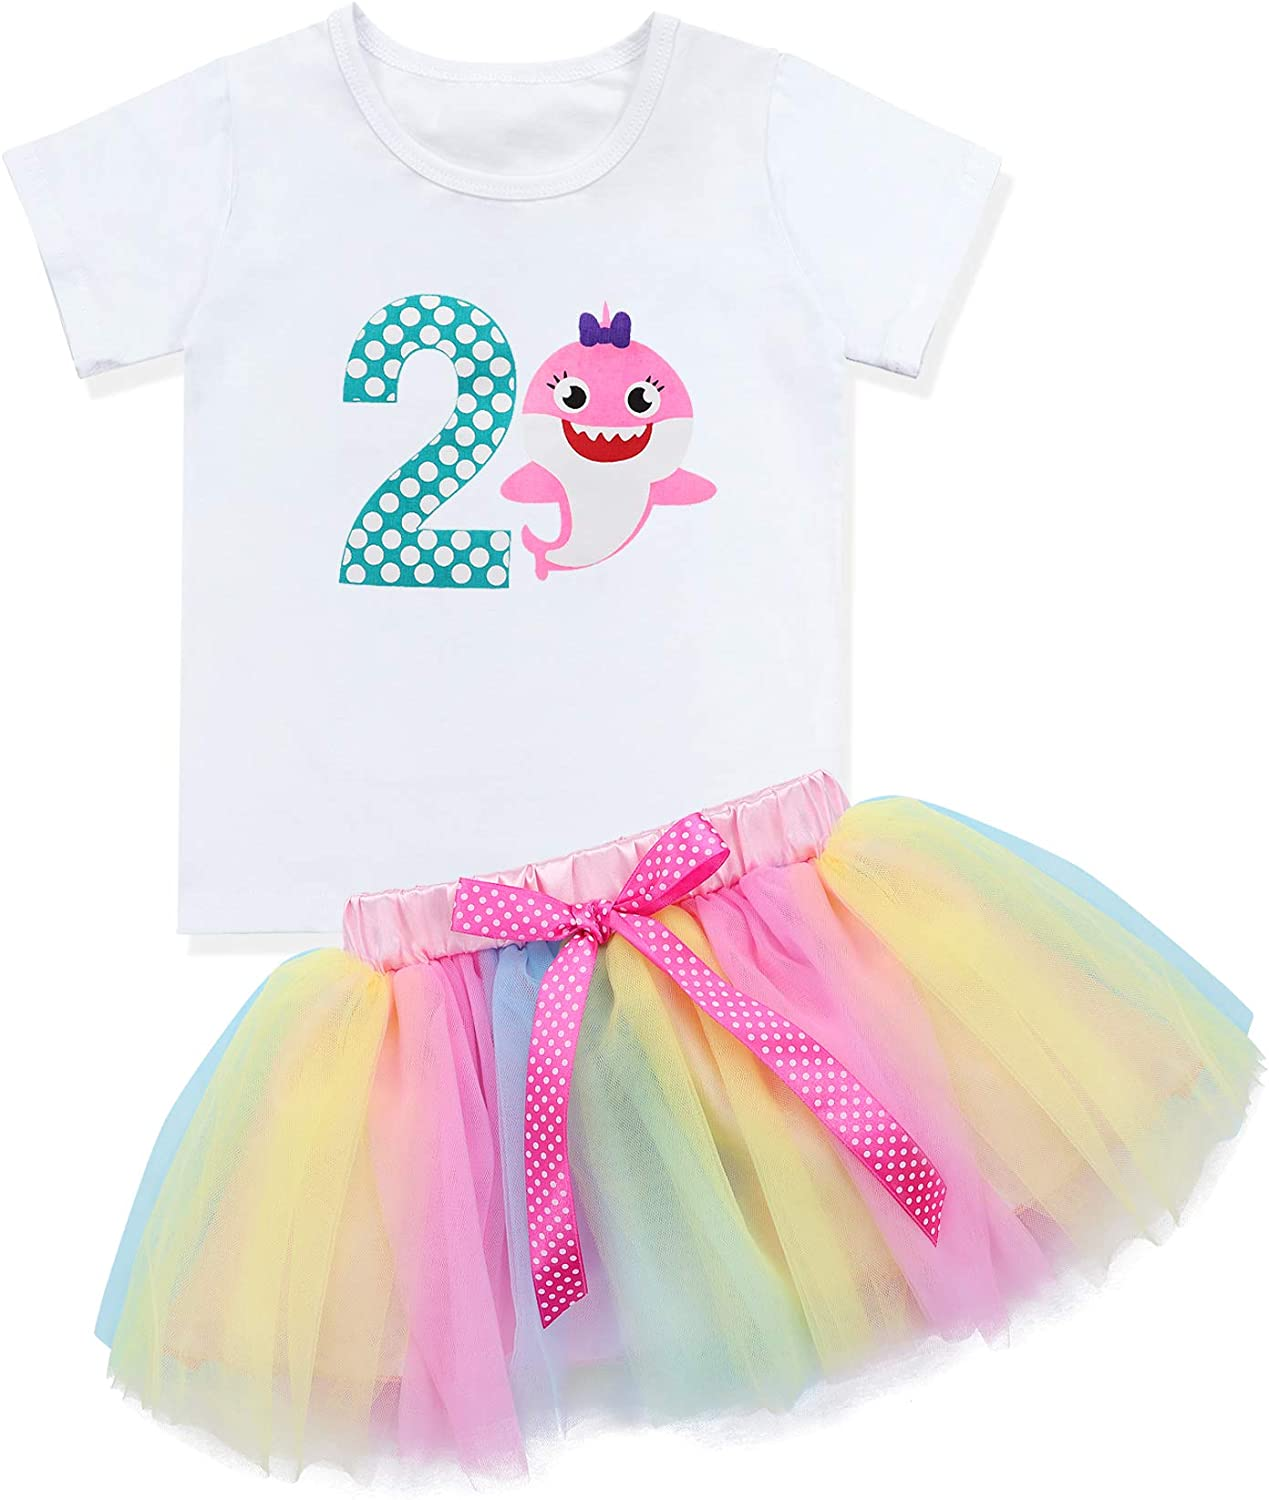 Baby Girls Birthday Shark and Doo Doo Doo Romper + Tutu Dress 1st Birthday Outfit Set